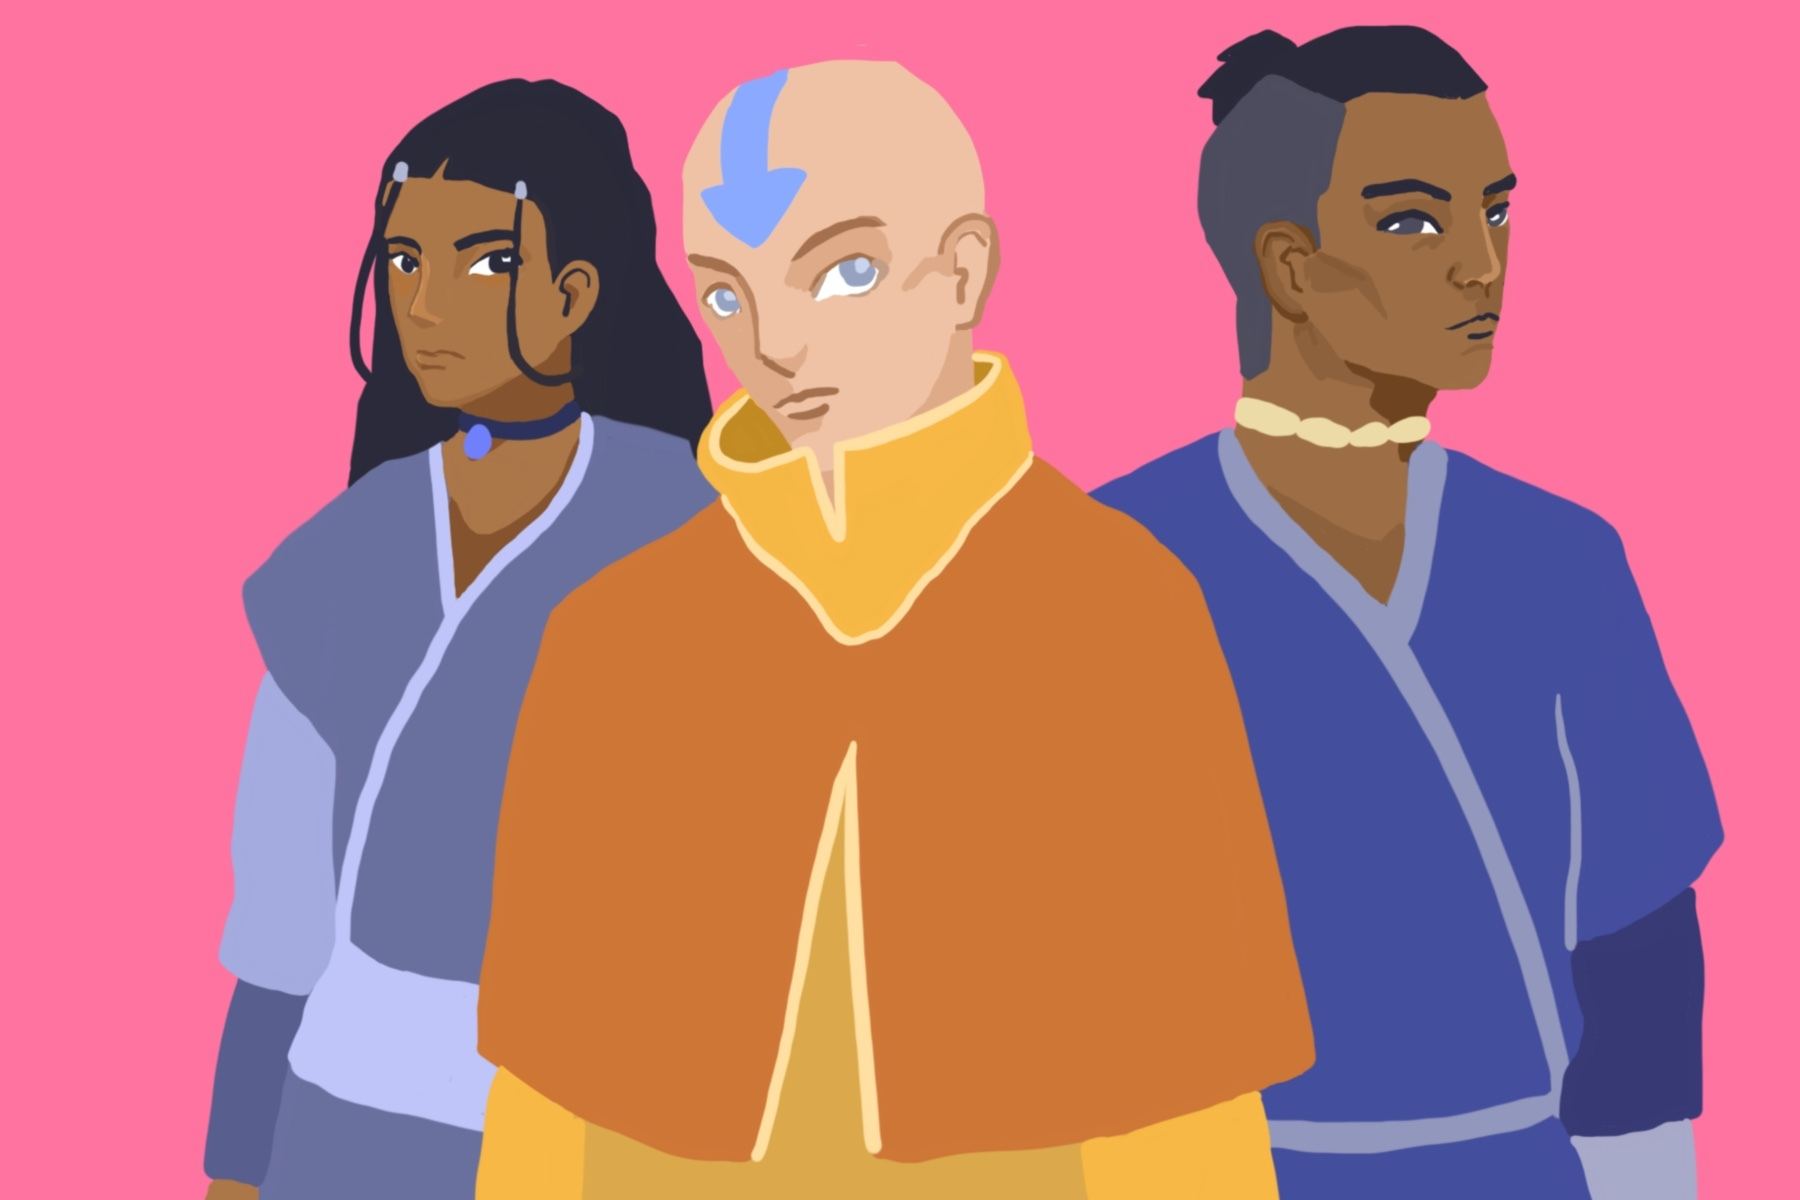 Aang, Katara and Sokka from the animated series Avatar: The Last Airbender.